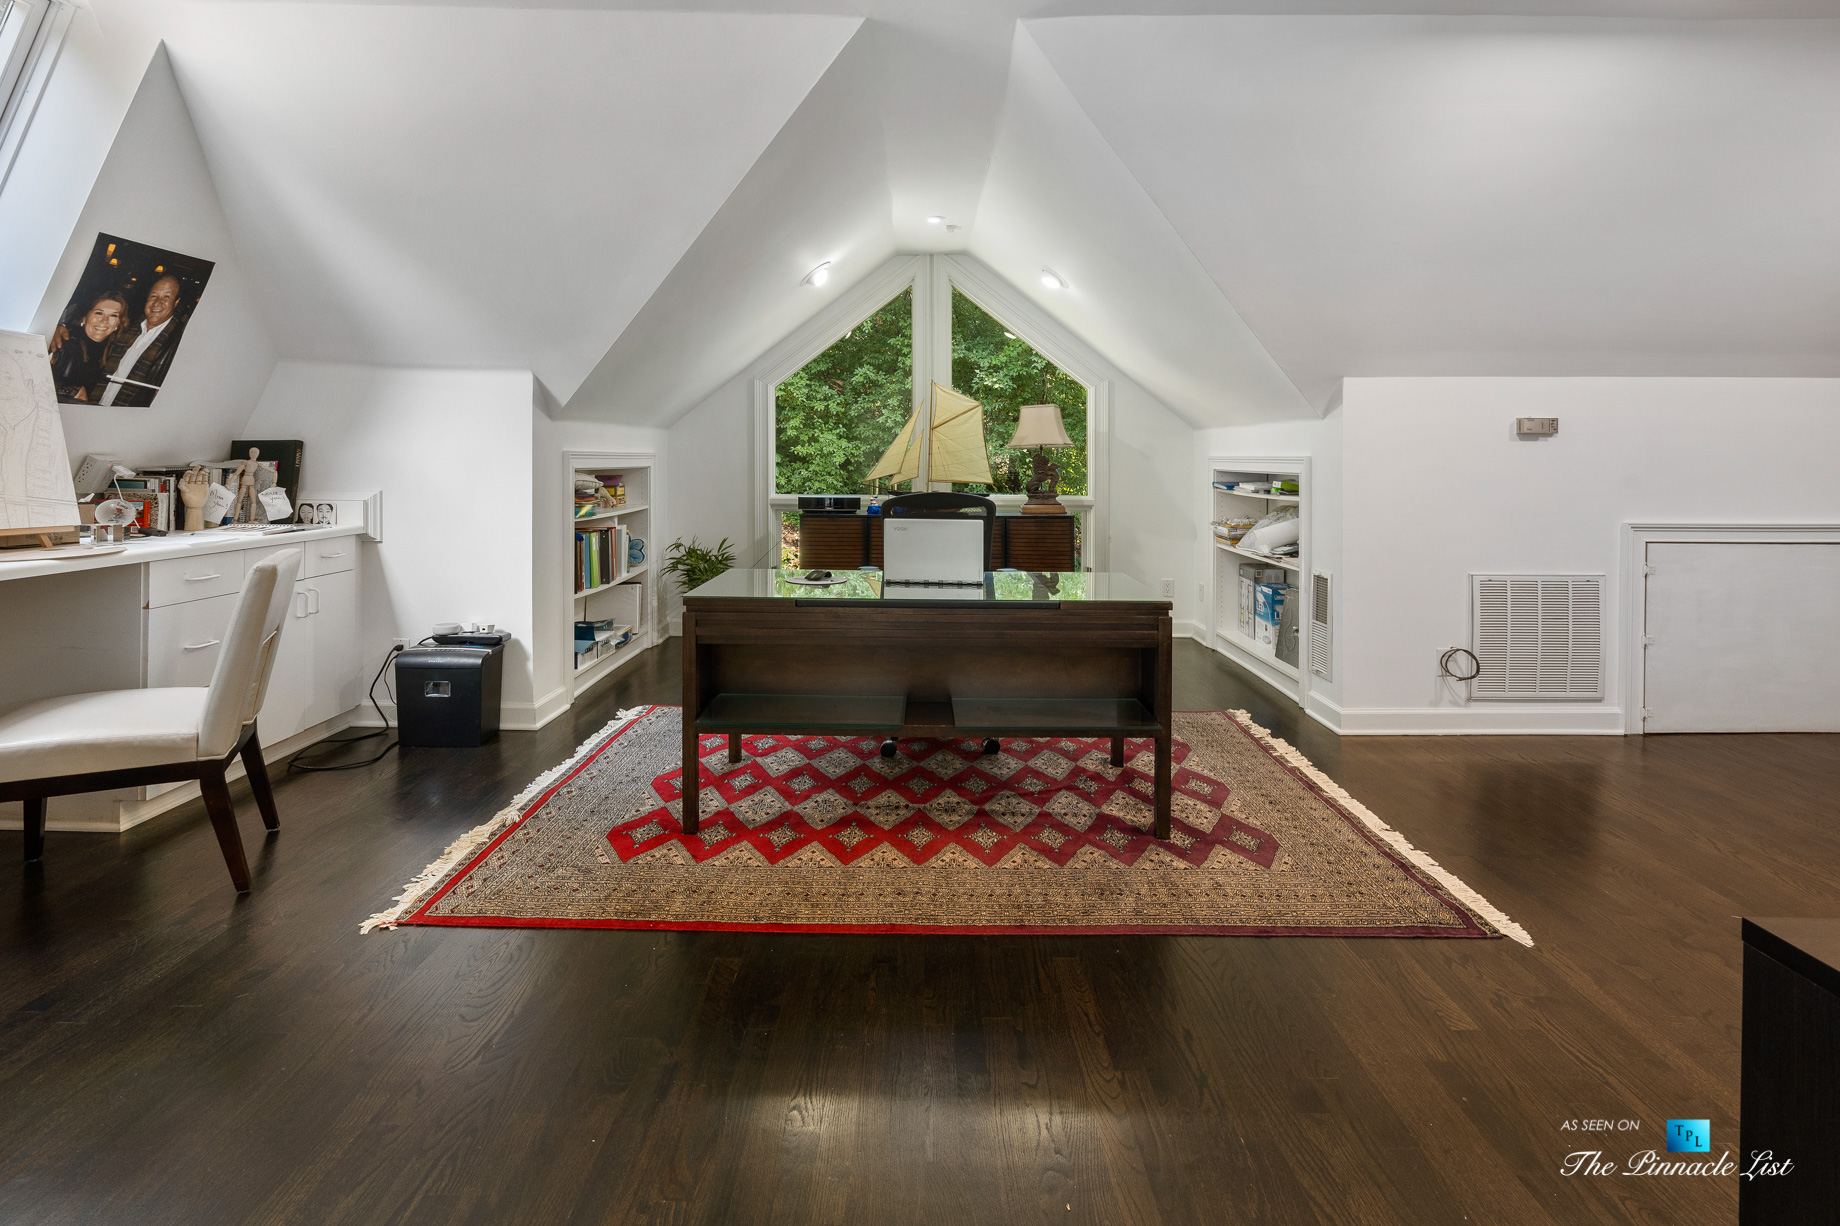 3906 Paces Ferry Rd NW, Atlanta, GA, USA - Private Office - Luxury Real Estate - Buckhead Home